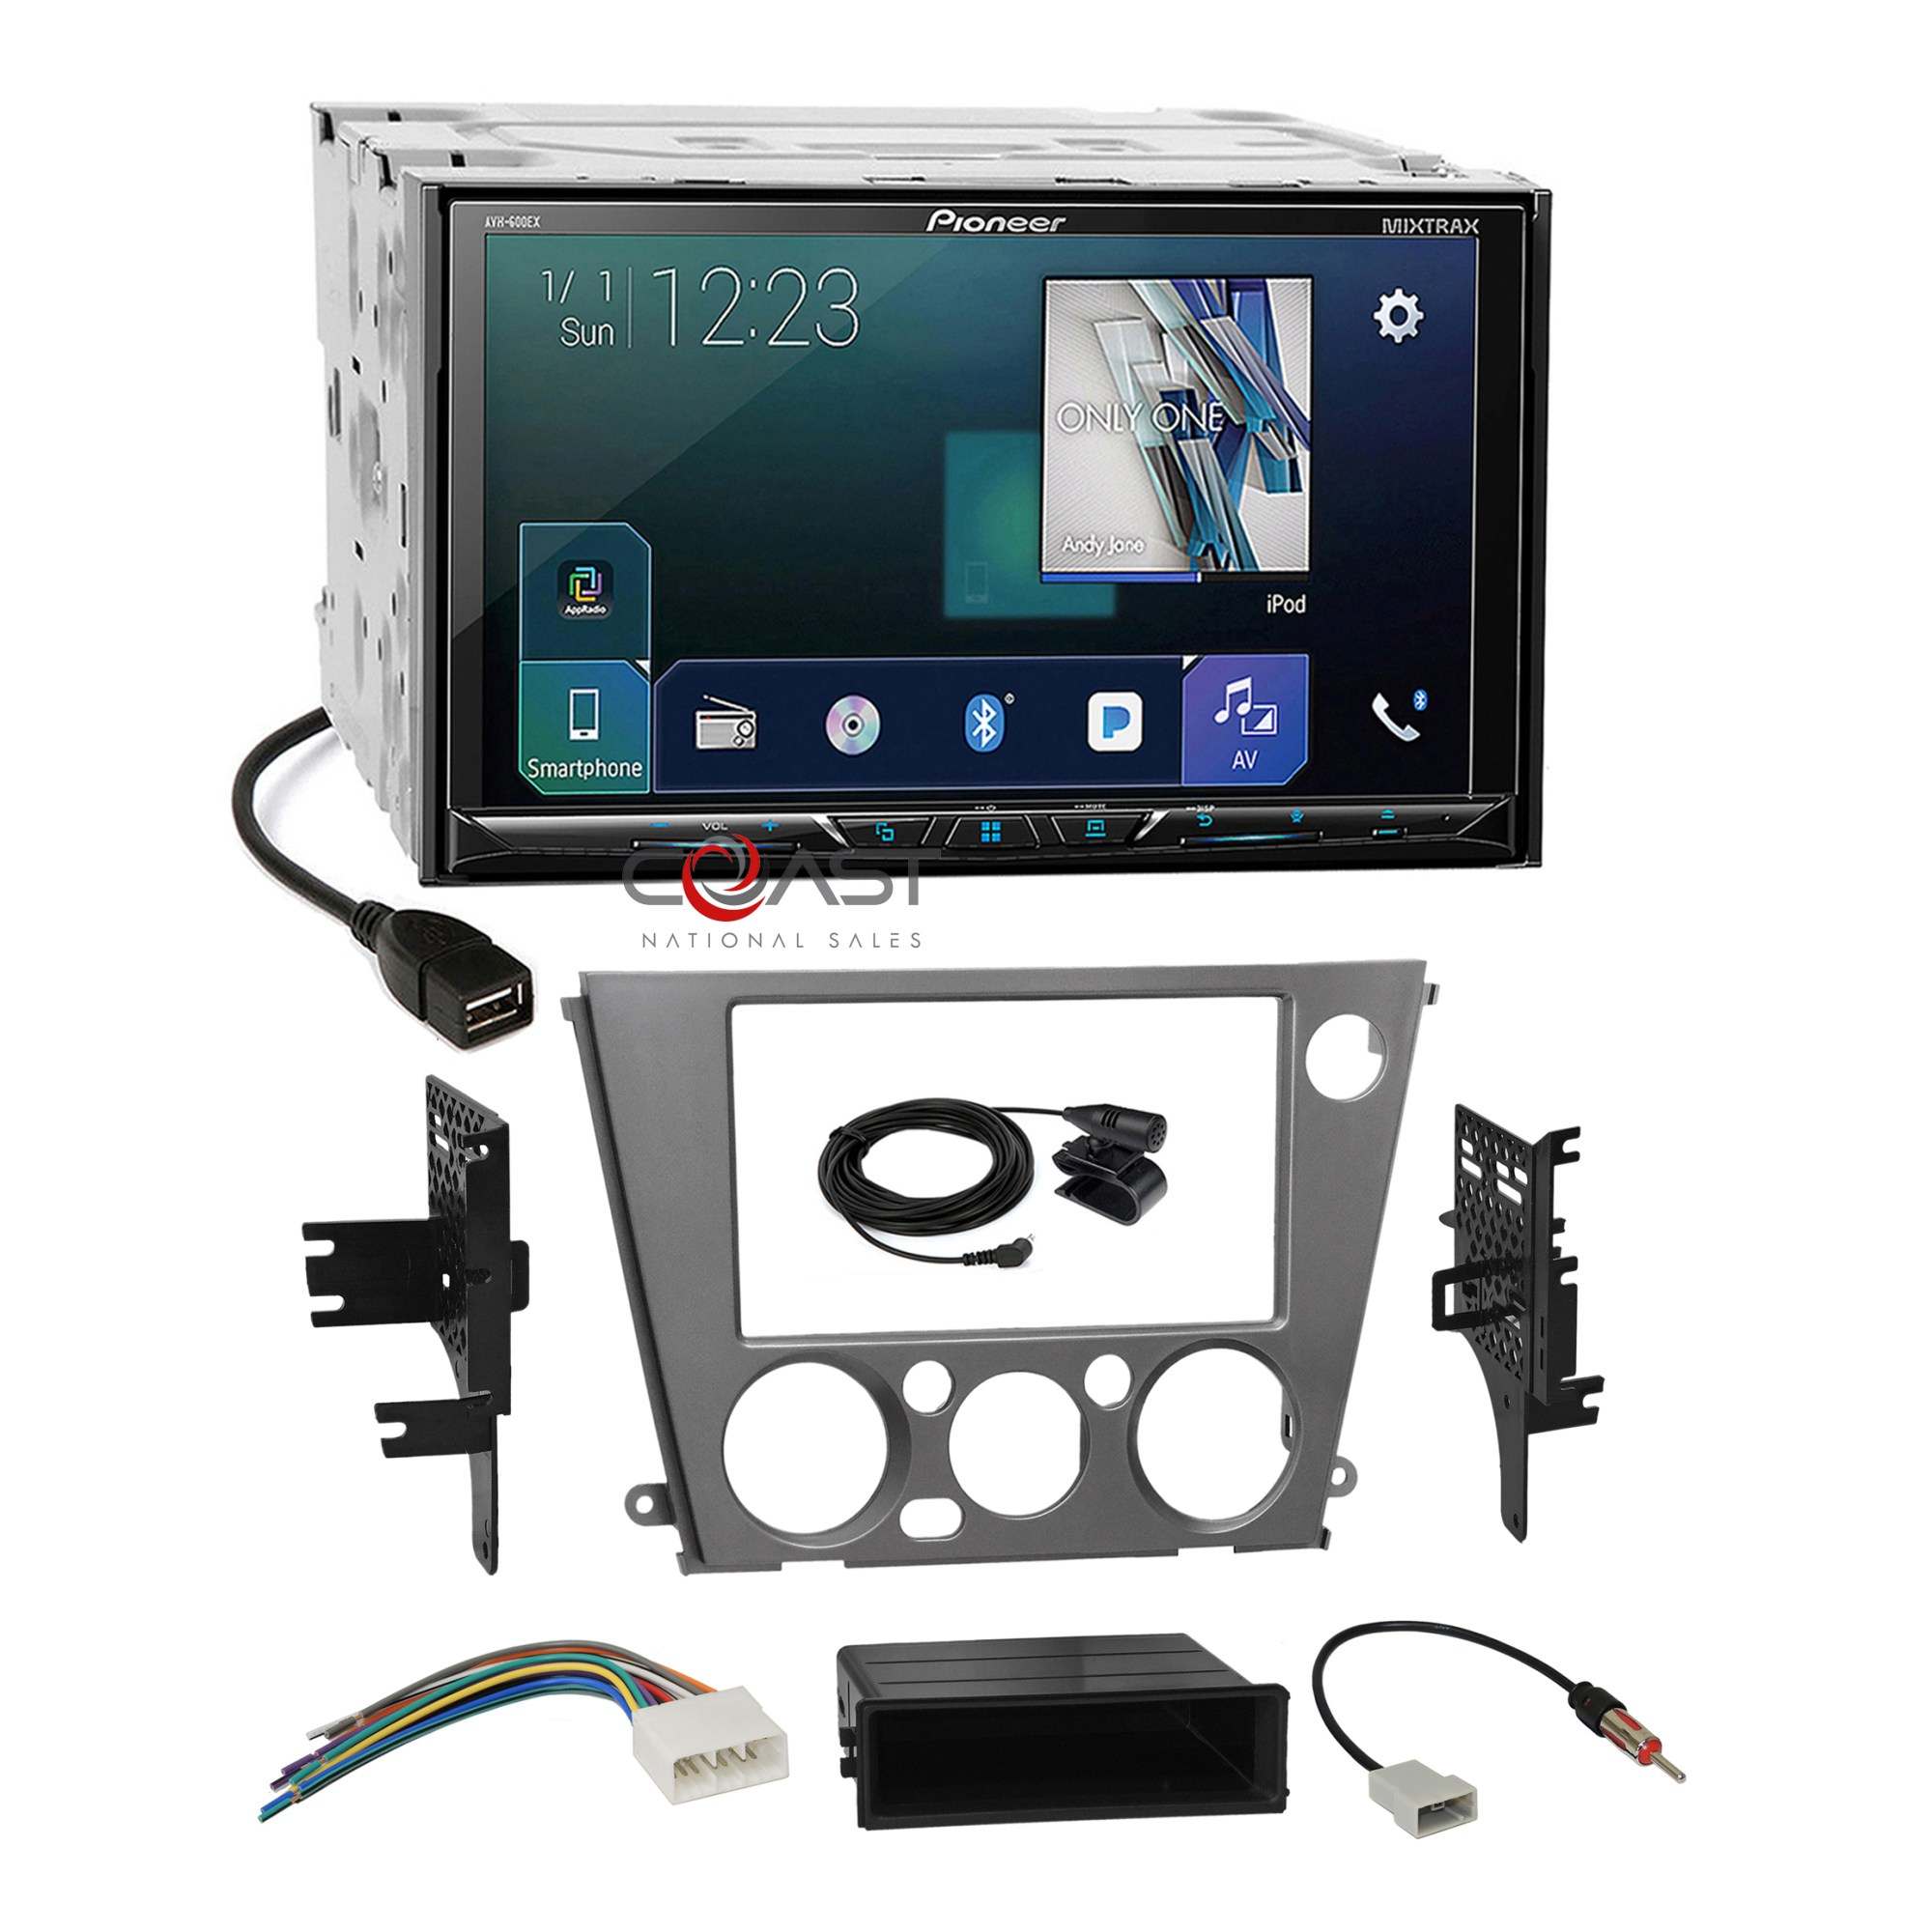 hight resolution of 2005 subaru outback dash wiring wiring diagram datasource 2005 subaru outback dash wiring